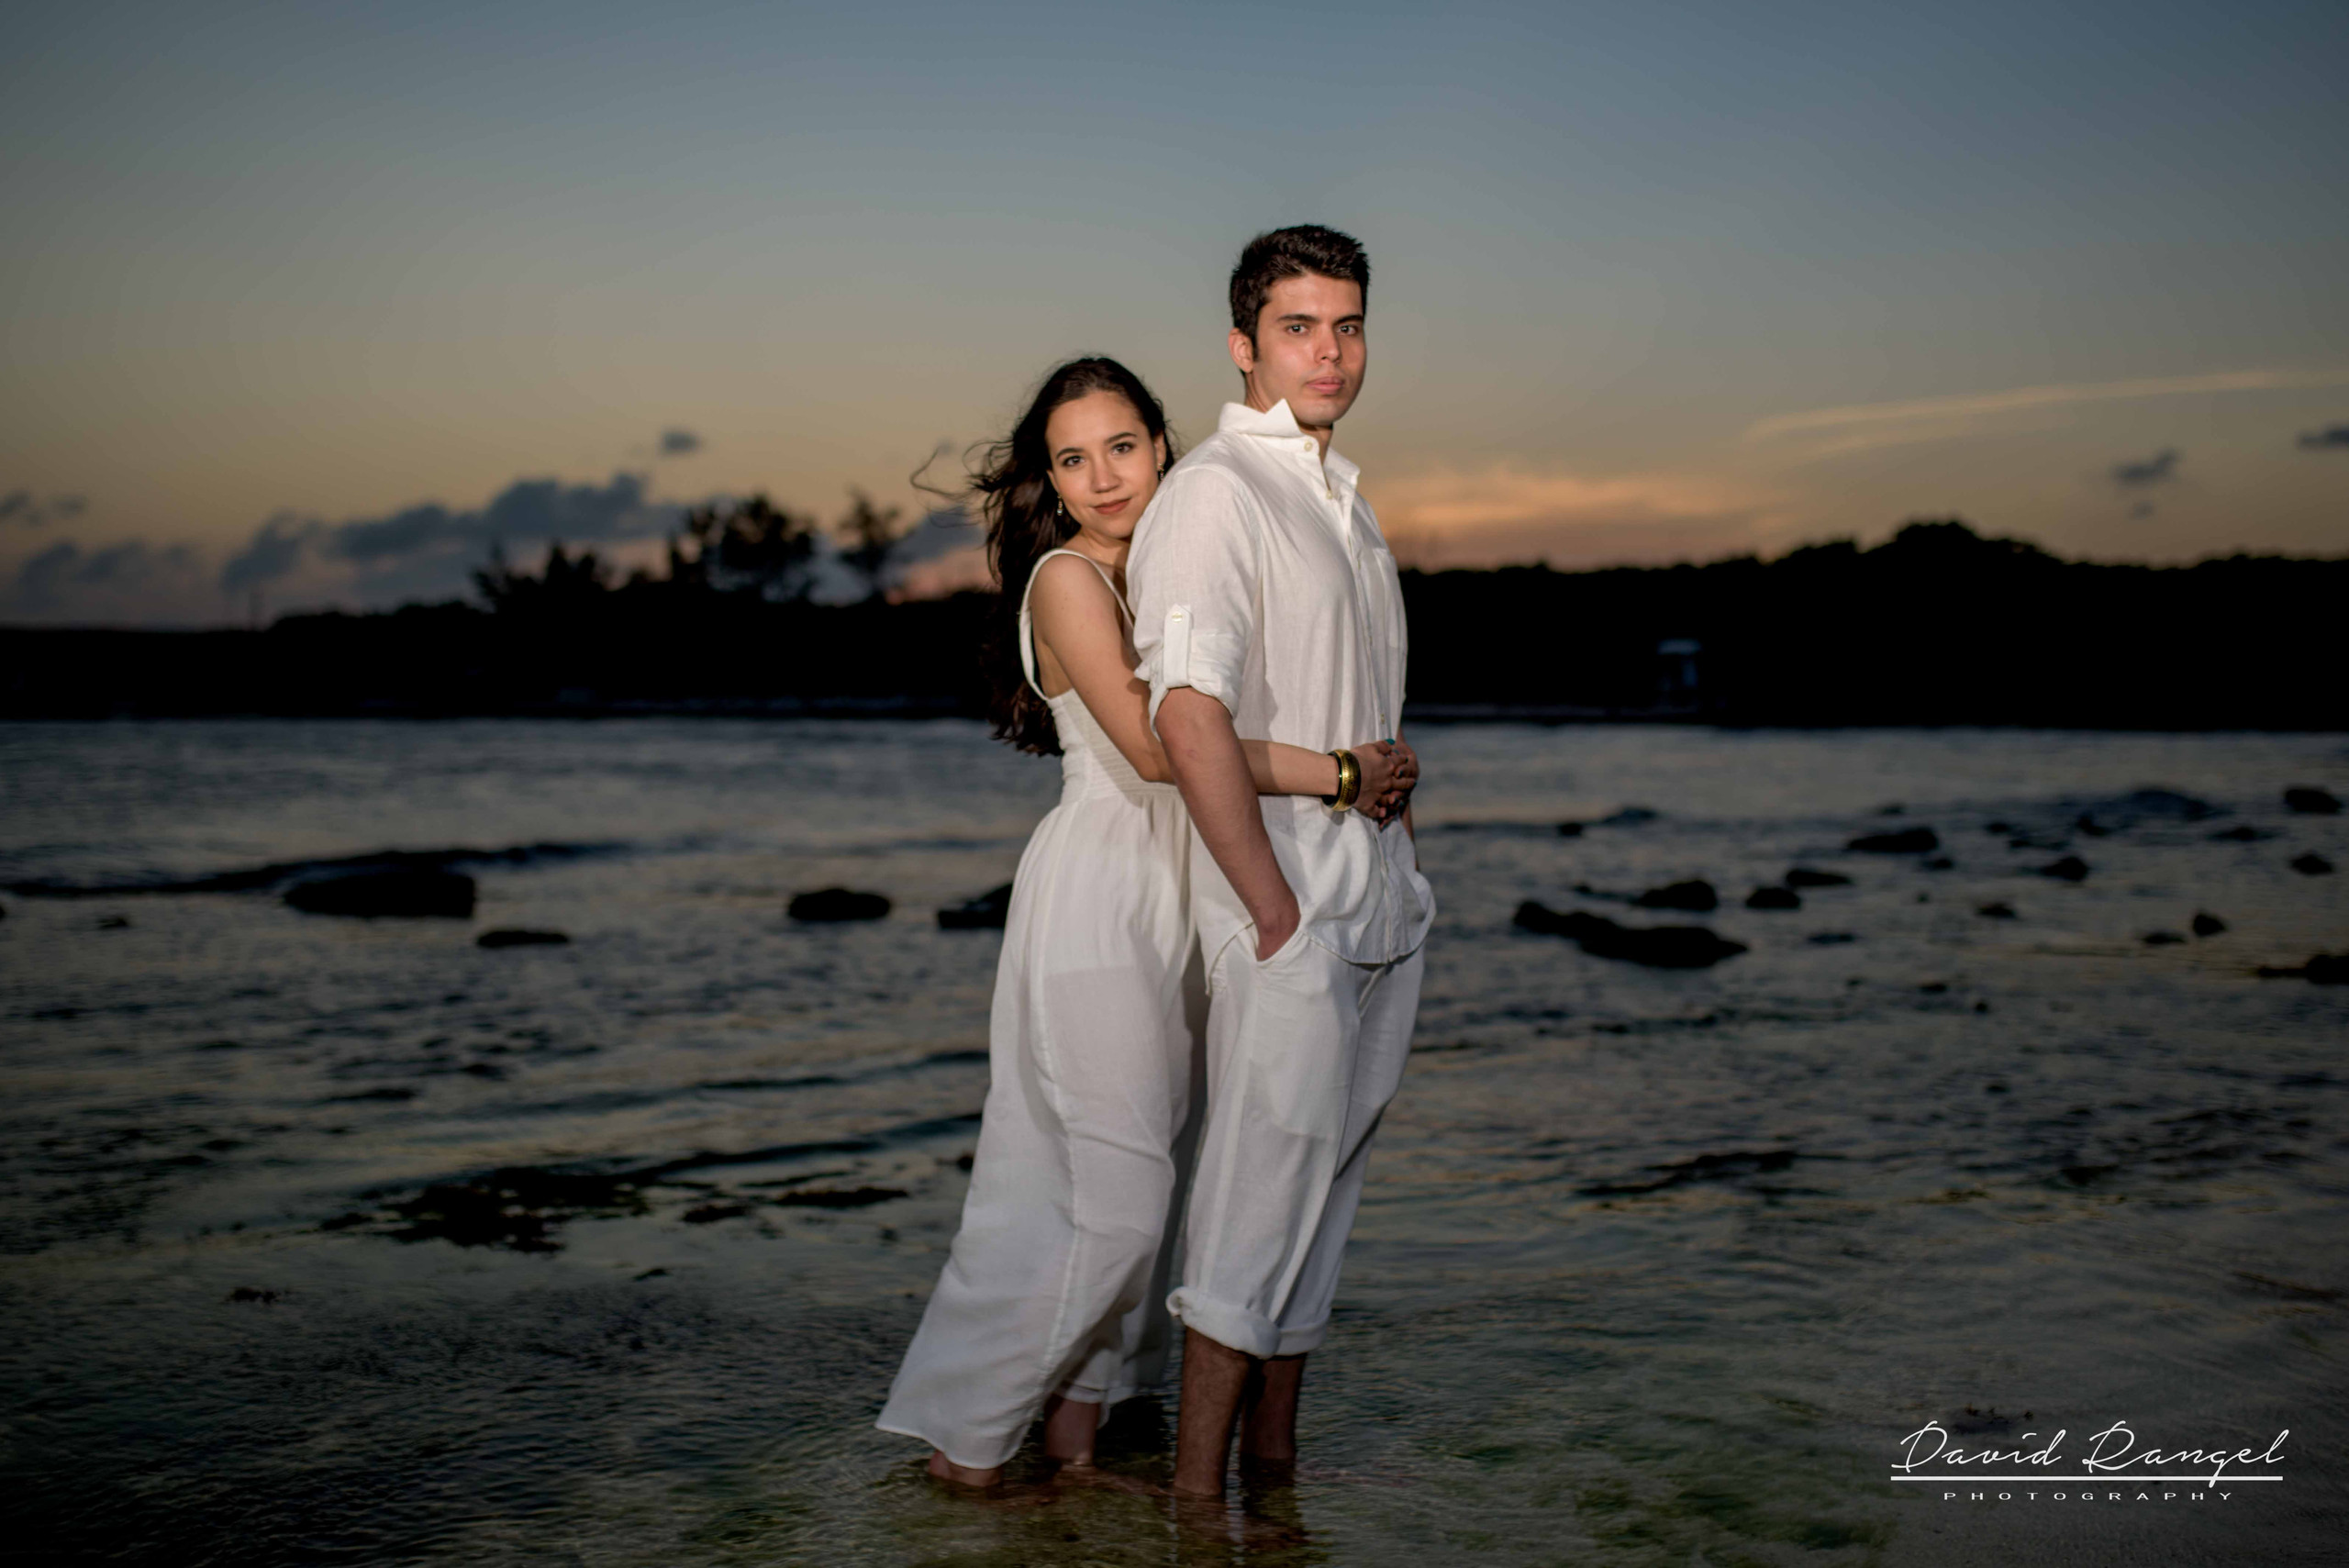 david+rangel+photography